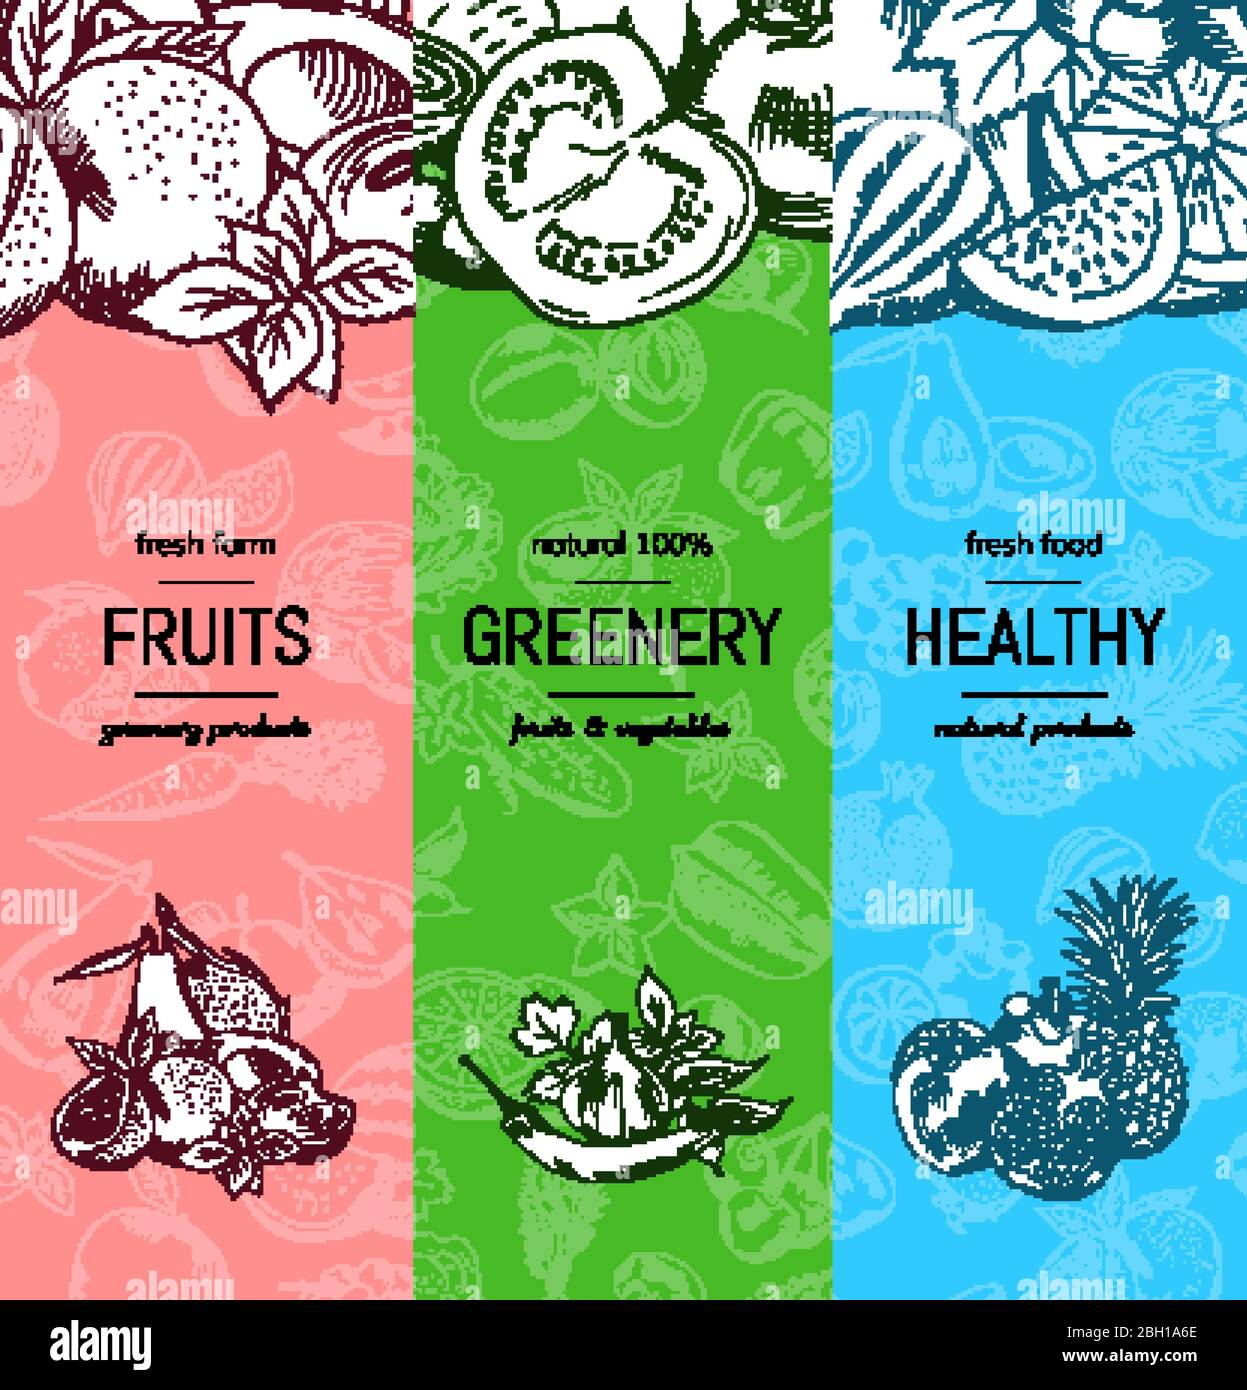 Vector Vegan Healthy Organic Banner Set With Doodle Sketched Fruits And Vegetables Organic Vegetarian Food Banner In Doodle Sketch Style Illustrati Stock Vector Image Art Alamy